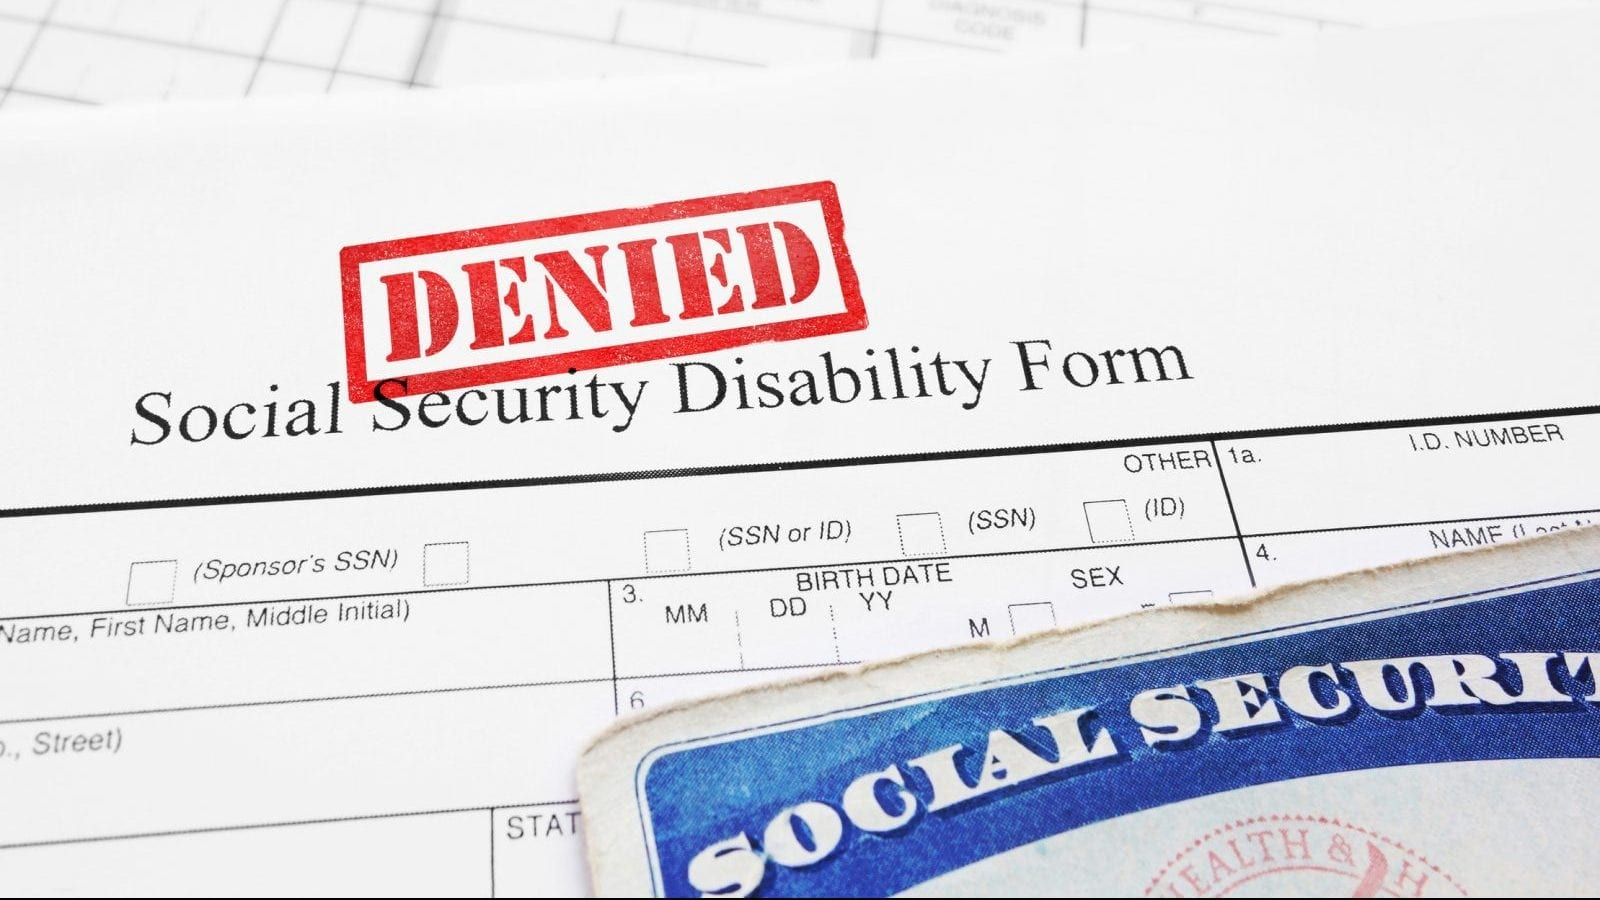 Social Security Disability Application Denied Stock Photo